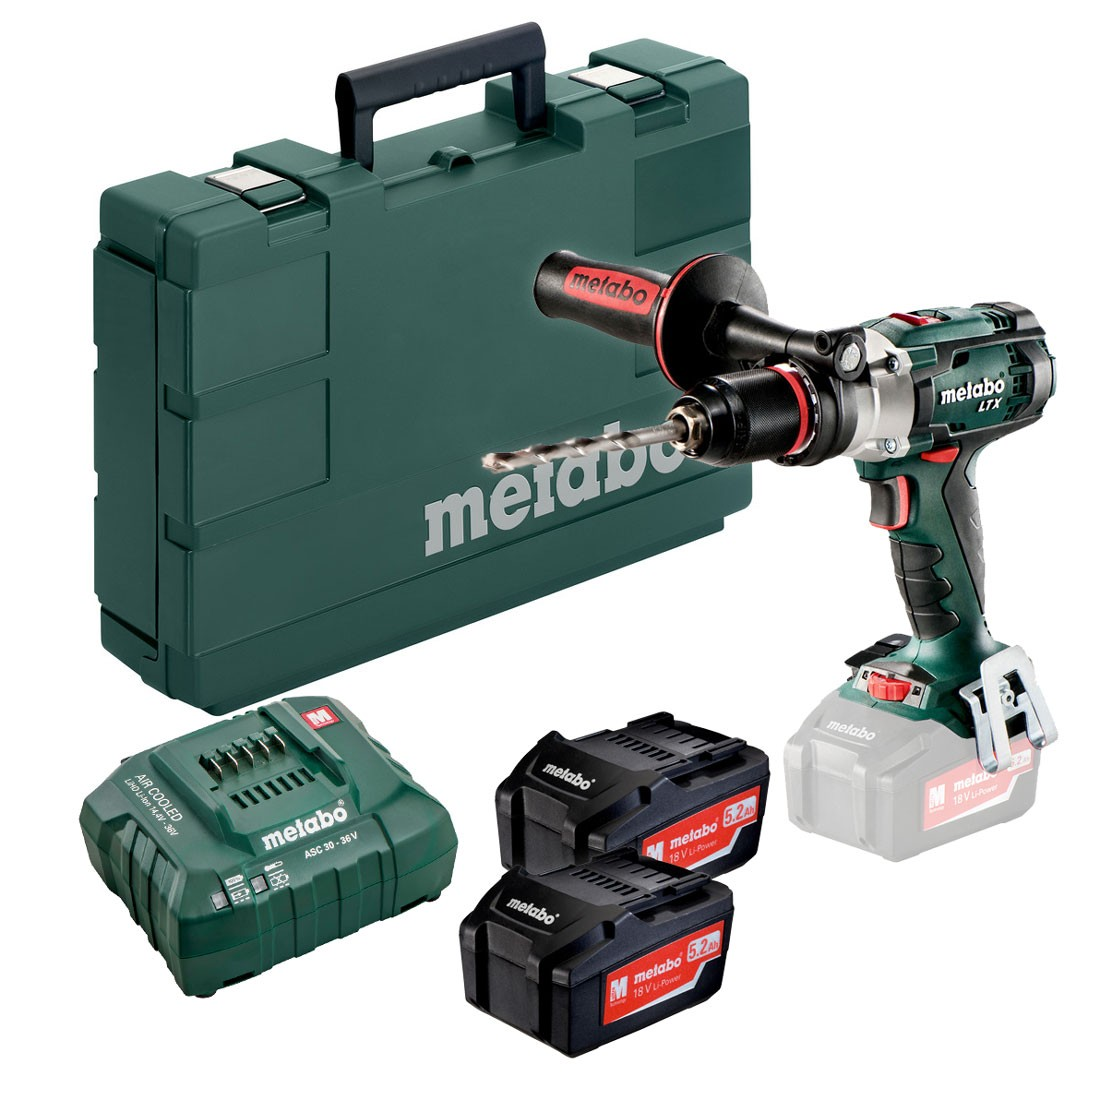 metabo sb 18 ltx impuls powerextreme 18v combi drill inc 2x 5 2ah batteries powertool world. Black Bedroom Furniture Sets. Home Design Ideas